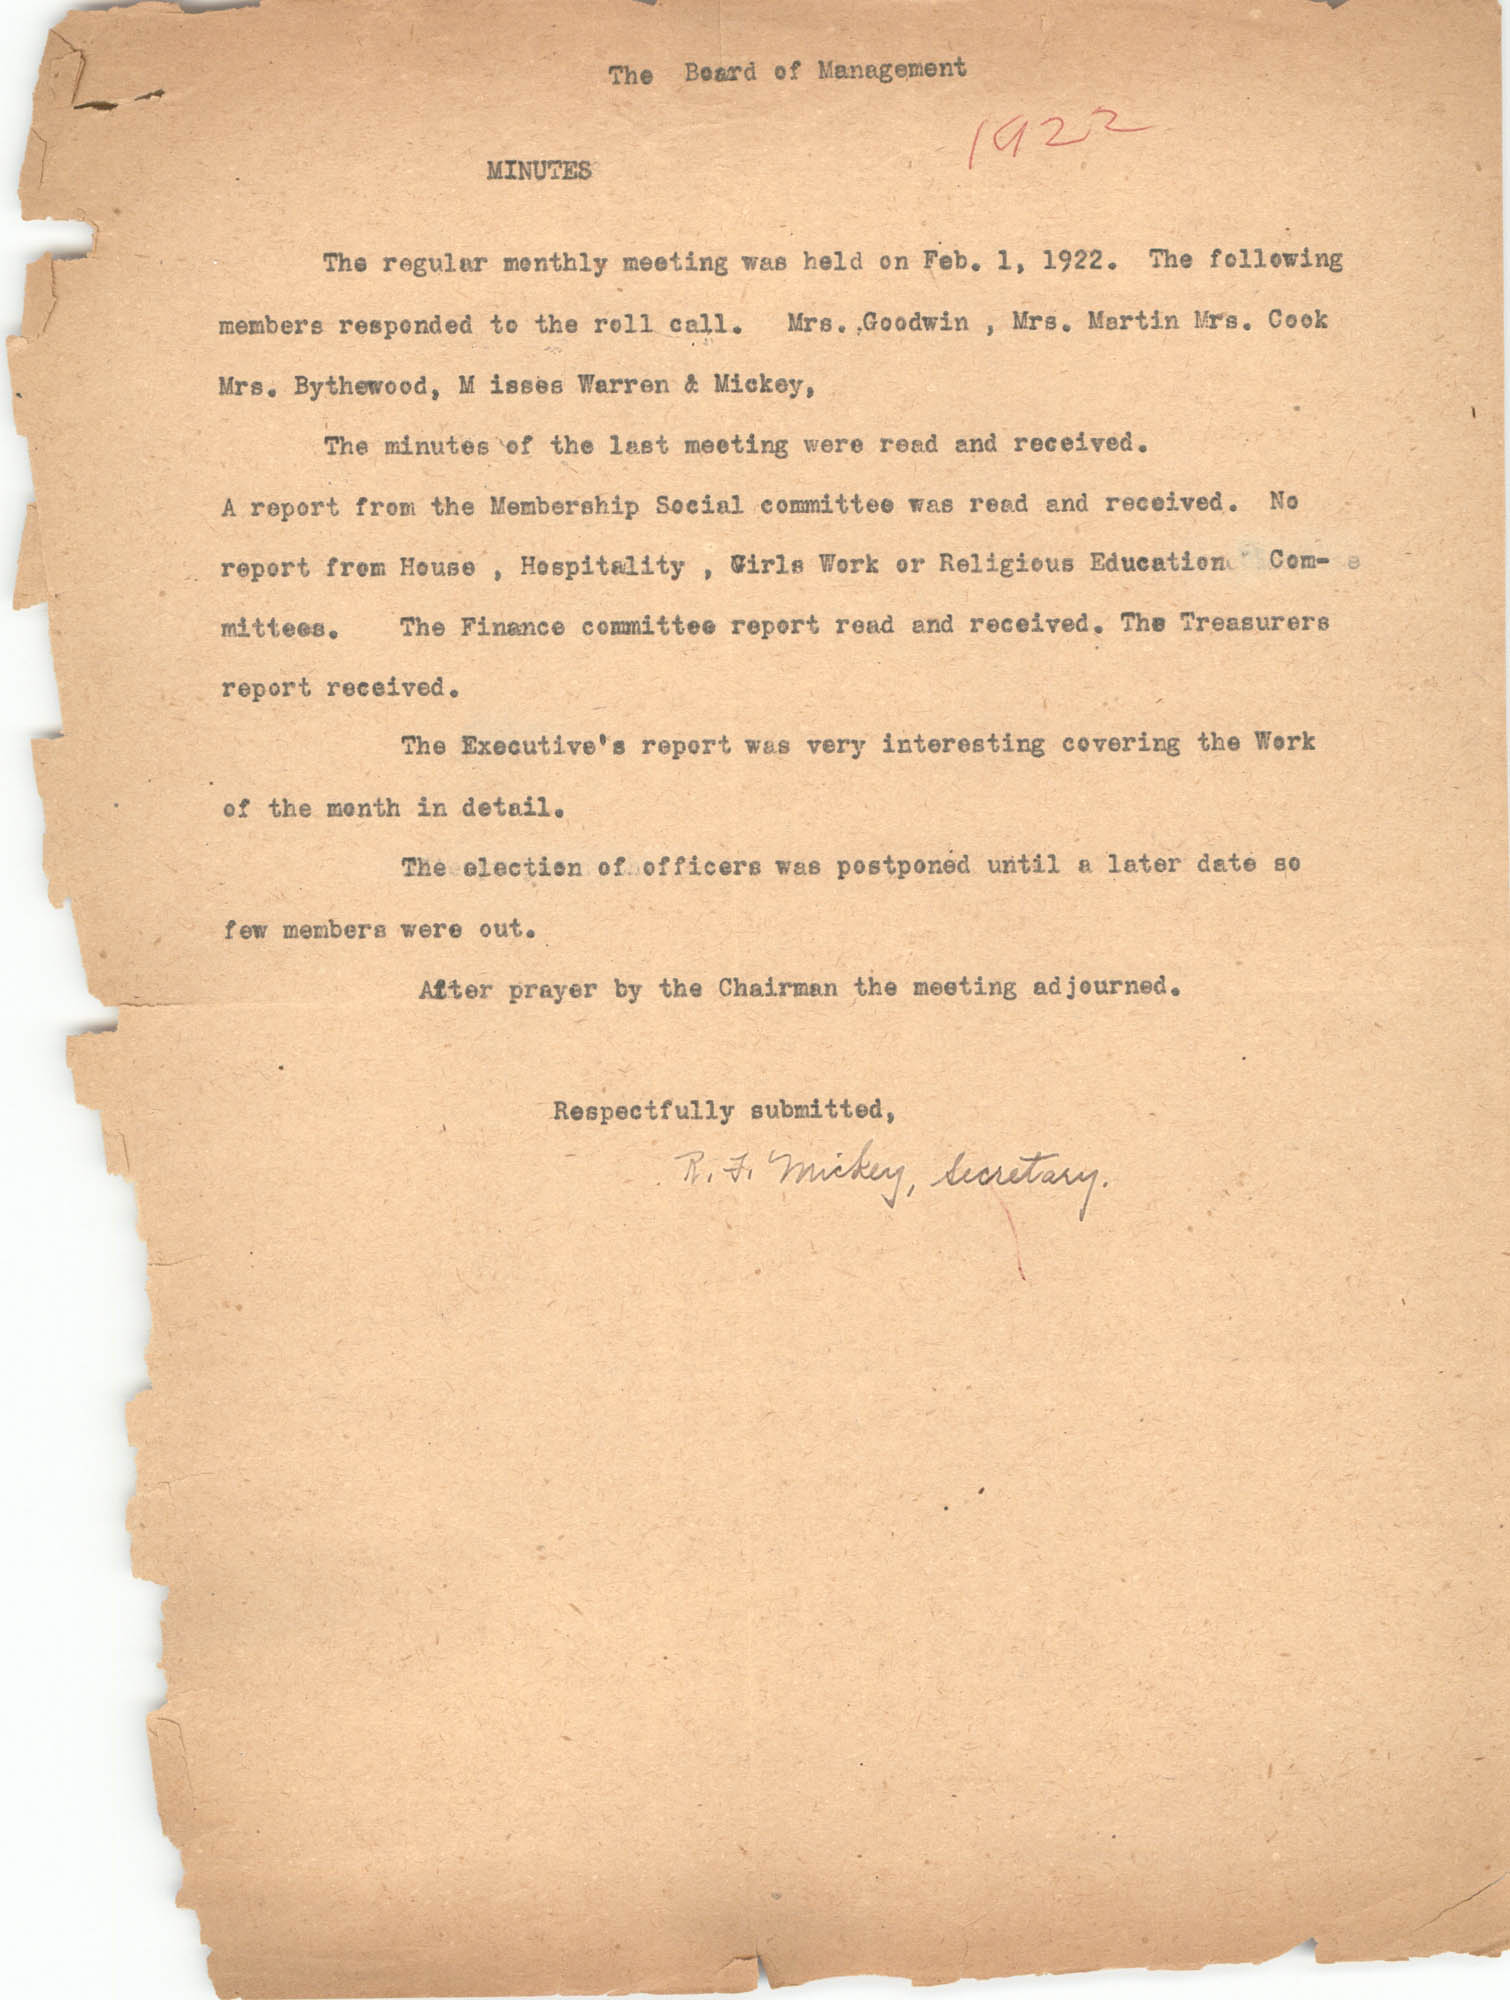 Minutes to the Board of Management Meeting, Coming Street Y.W.C.A., February 1, 1922